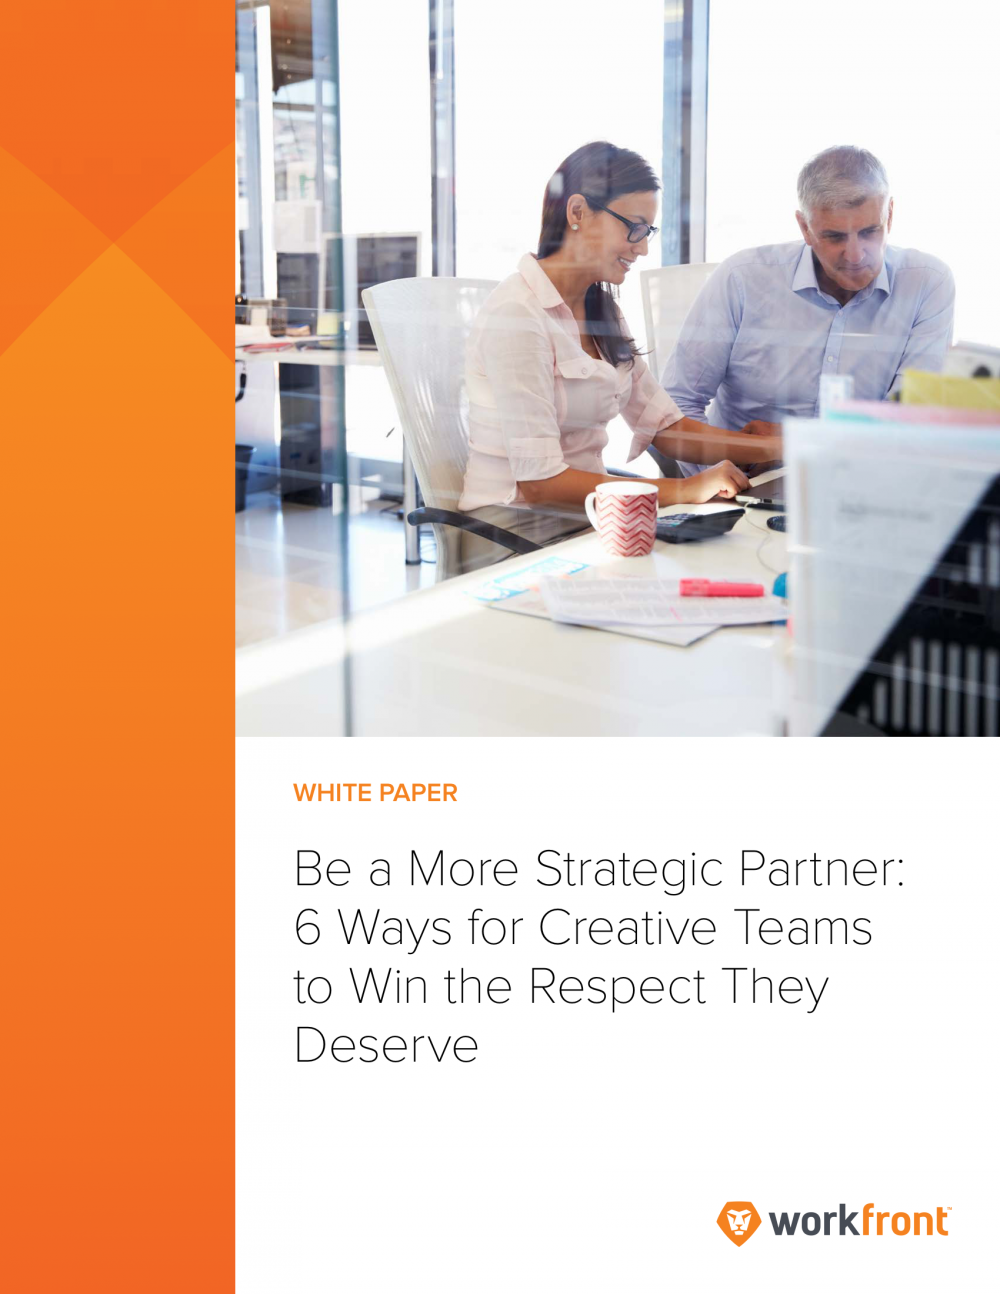 Be a More Strategic Partner: 6 Ways for Creative Teams to Win the Respect They Deserve